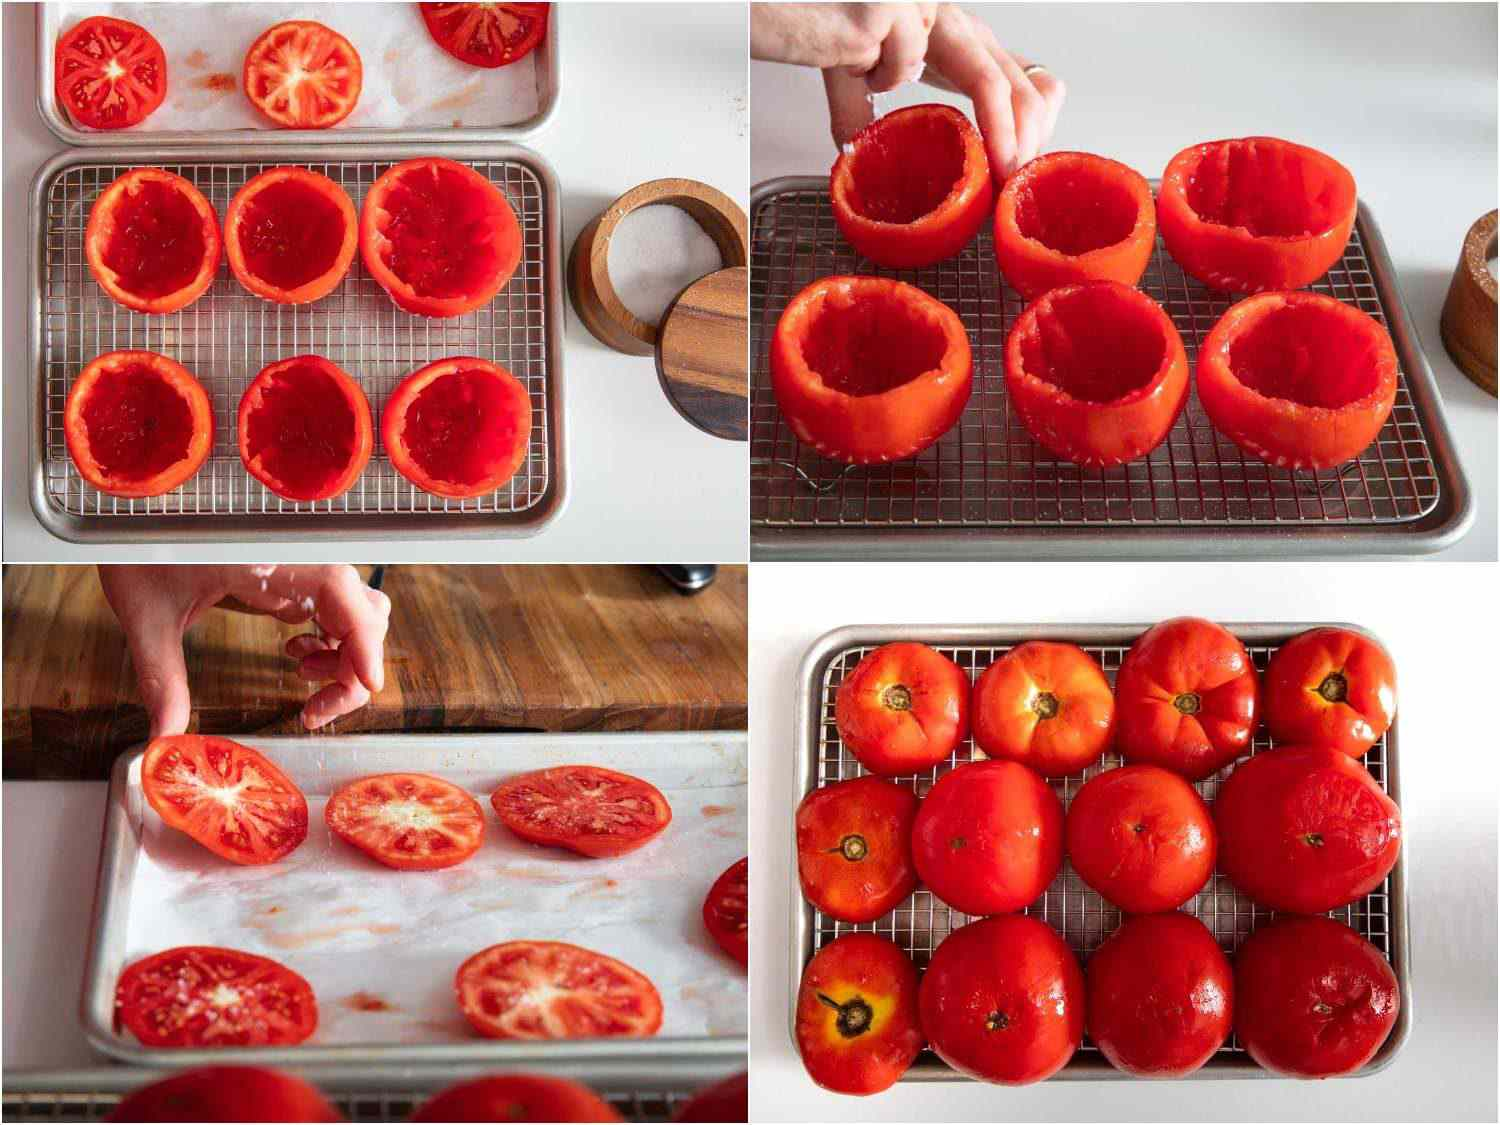 Photo collage of salting hollowed out tomatoes and placing them upside down on a wire rack-lined baking sheet to drain them of excess moisture.